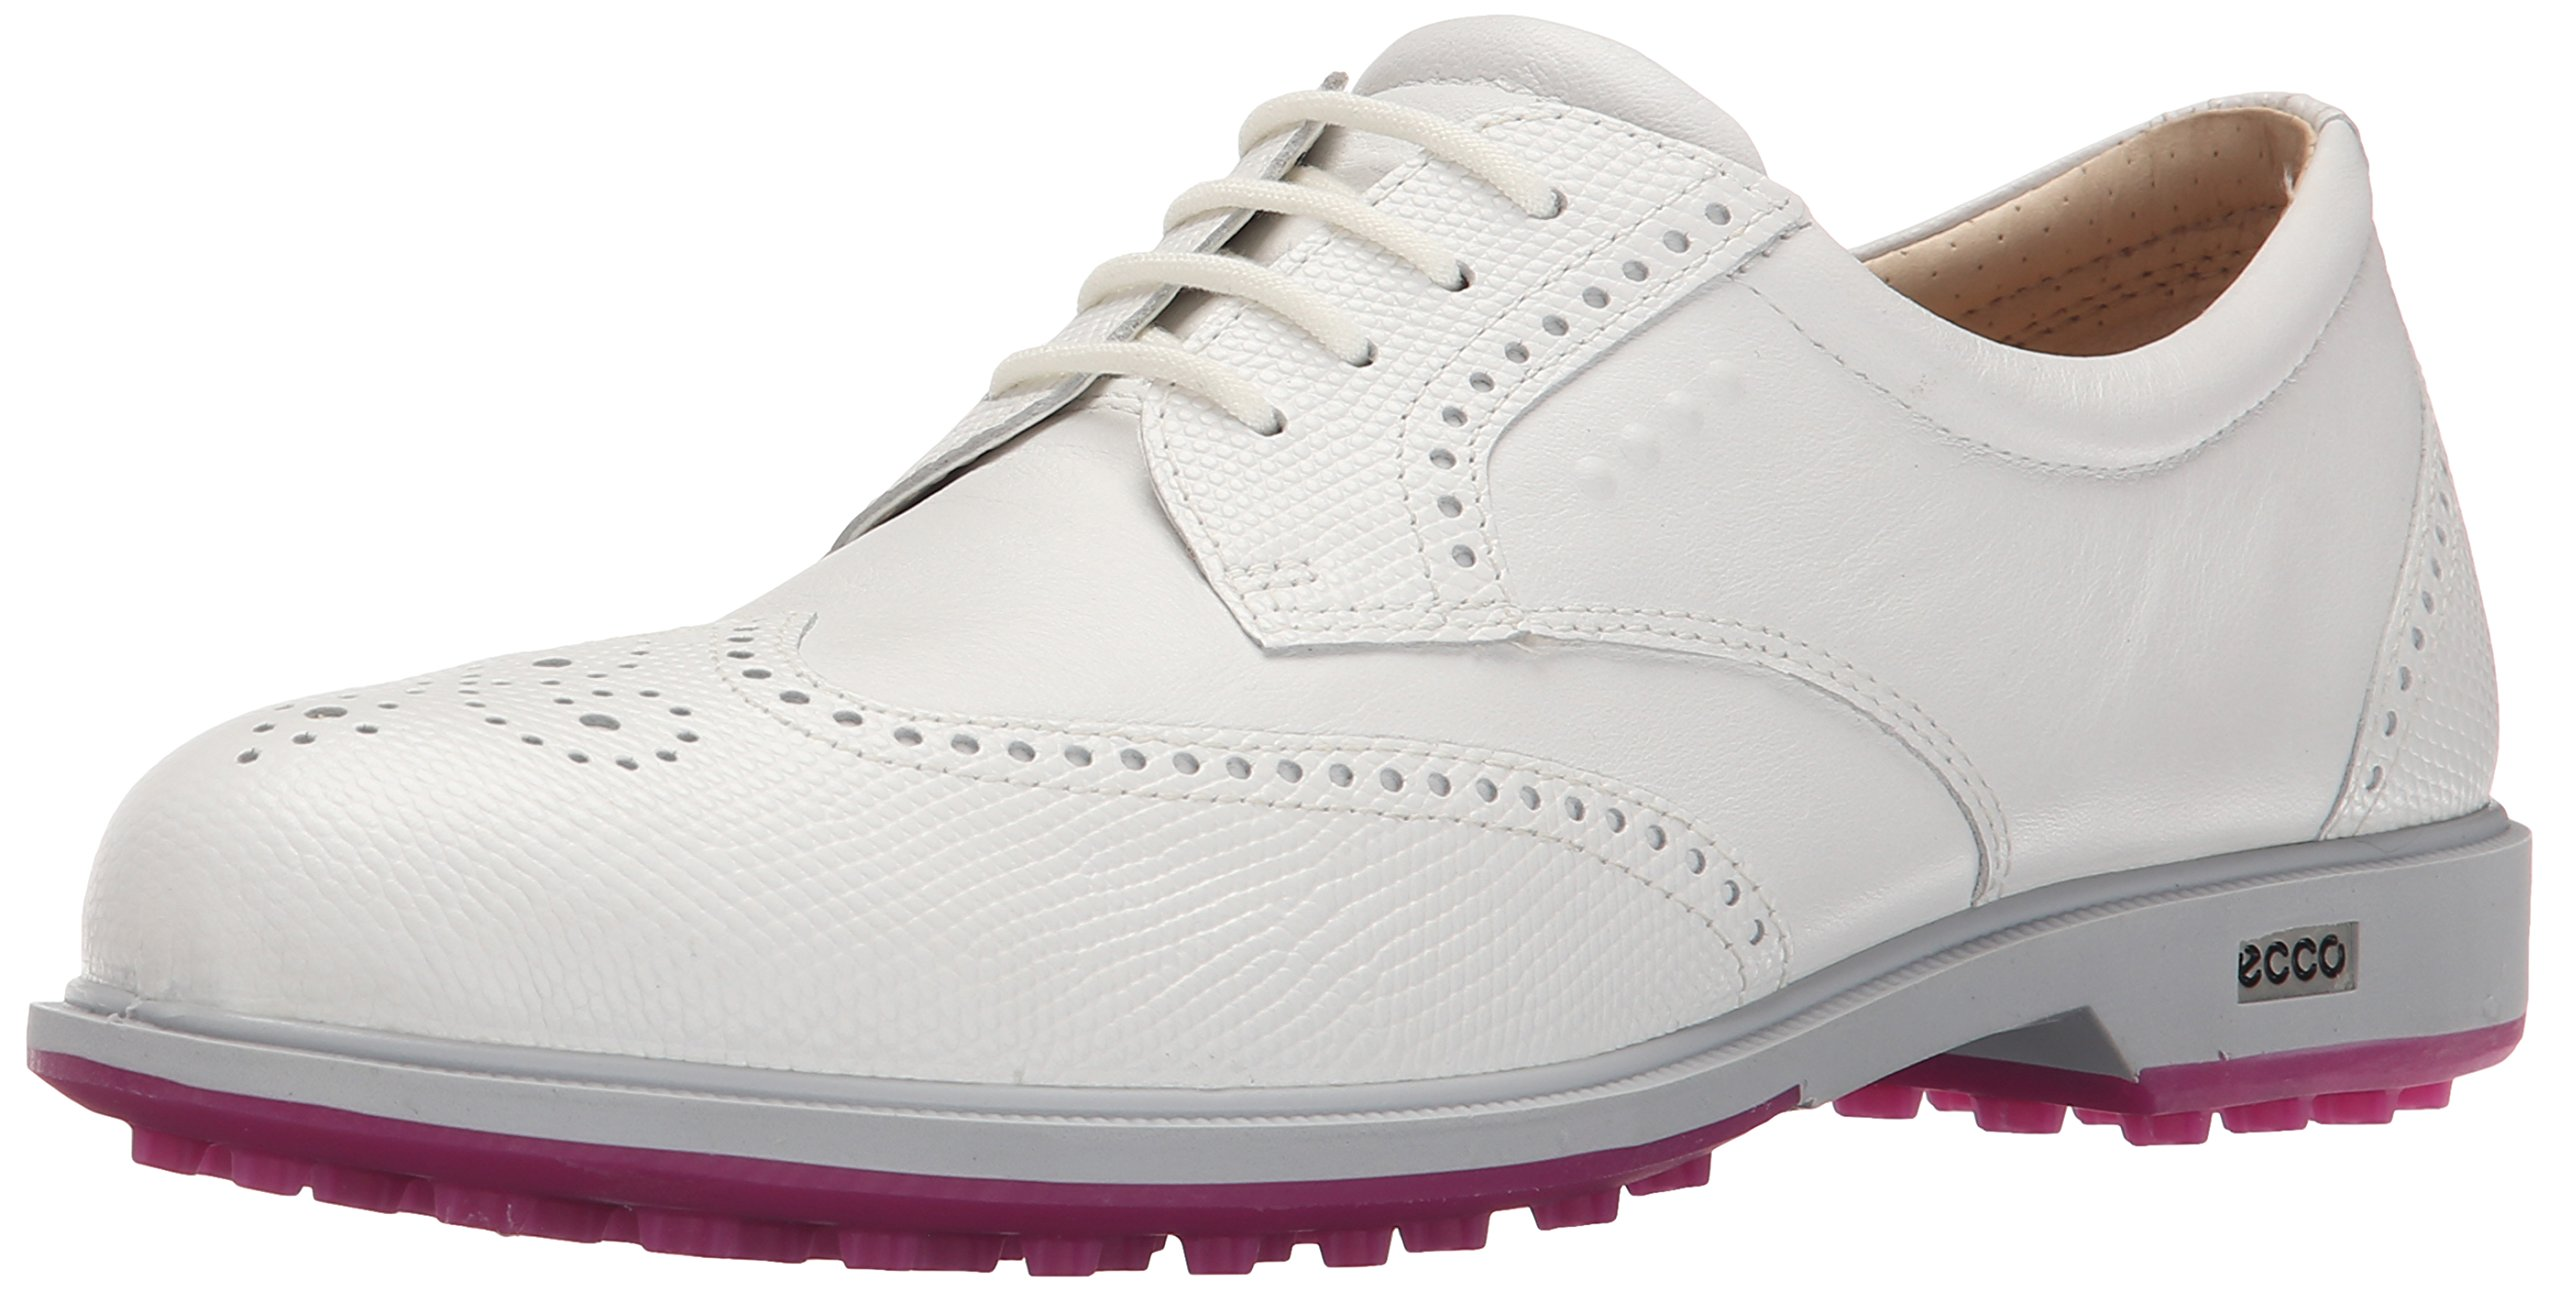 ECCO Women's Classic Hybrid Golf Shoes, Weiß, Weiß (53301WHITE/WHITE), 4 UK